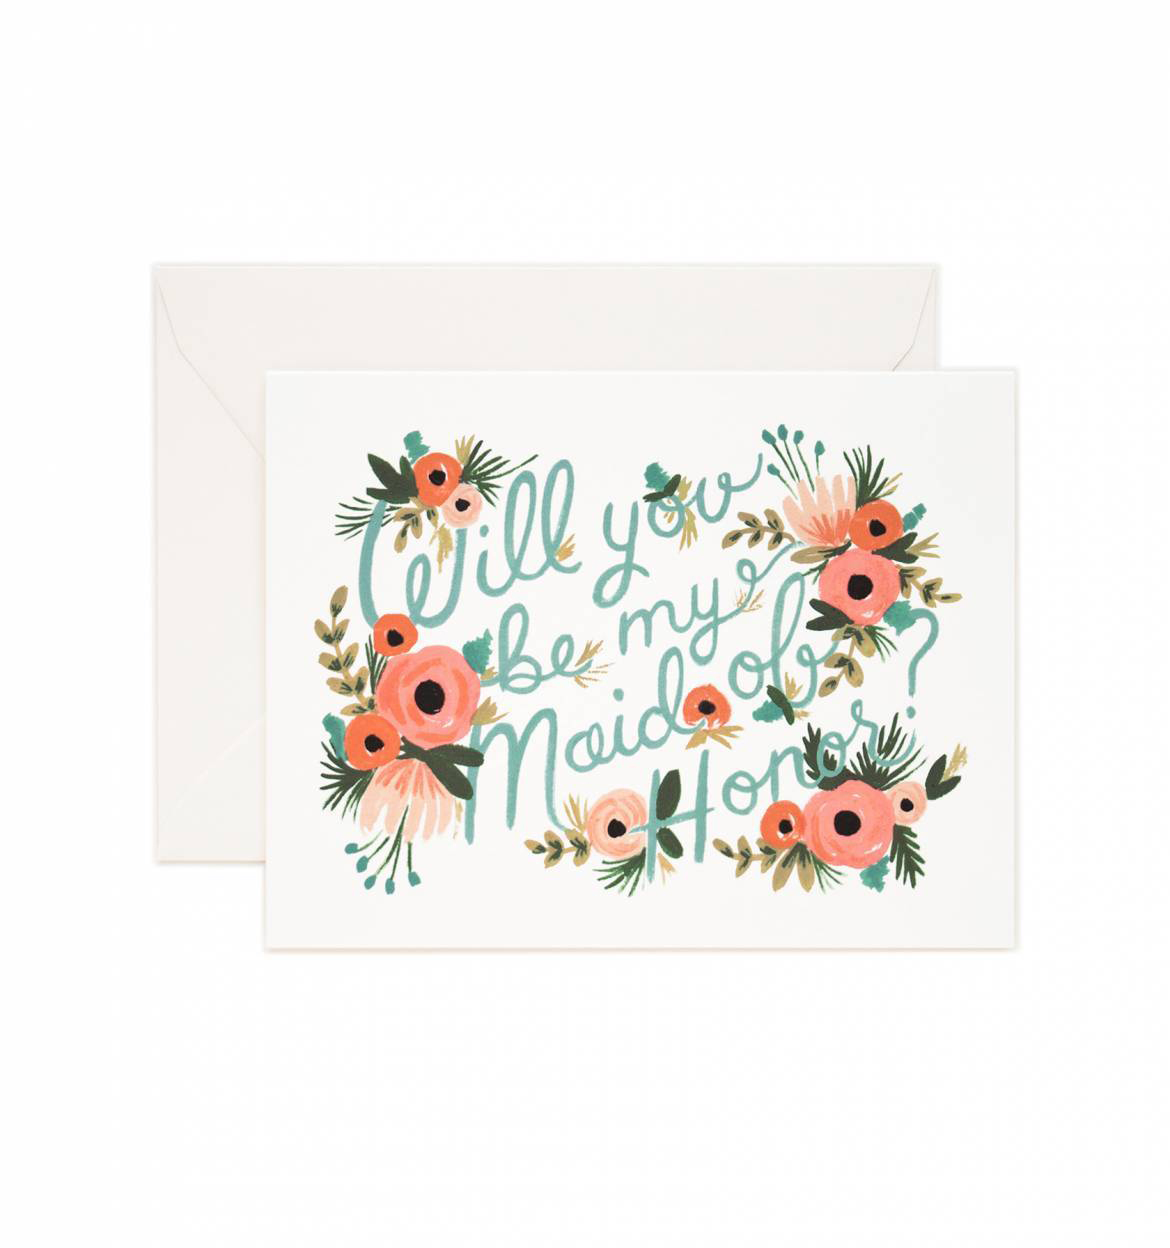 maid of honor proposal floral card